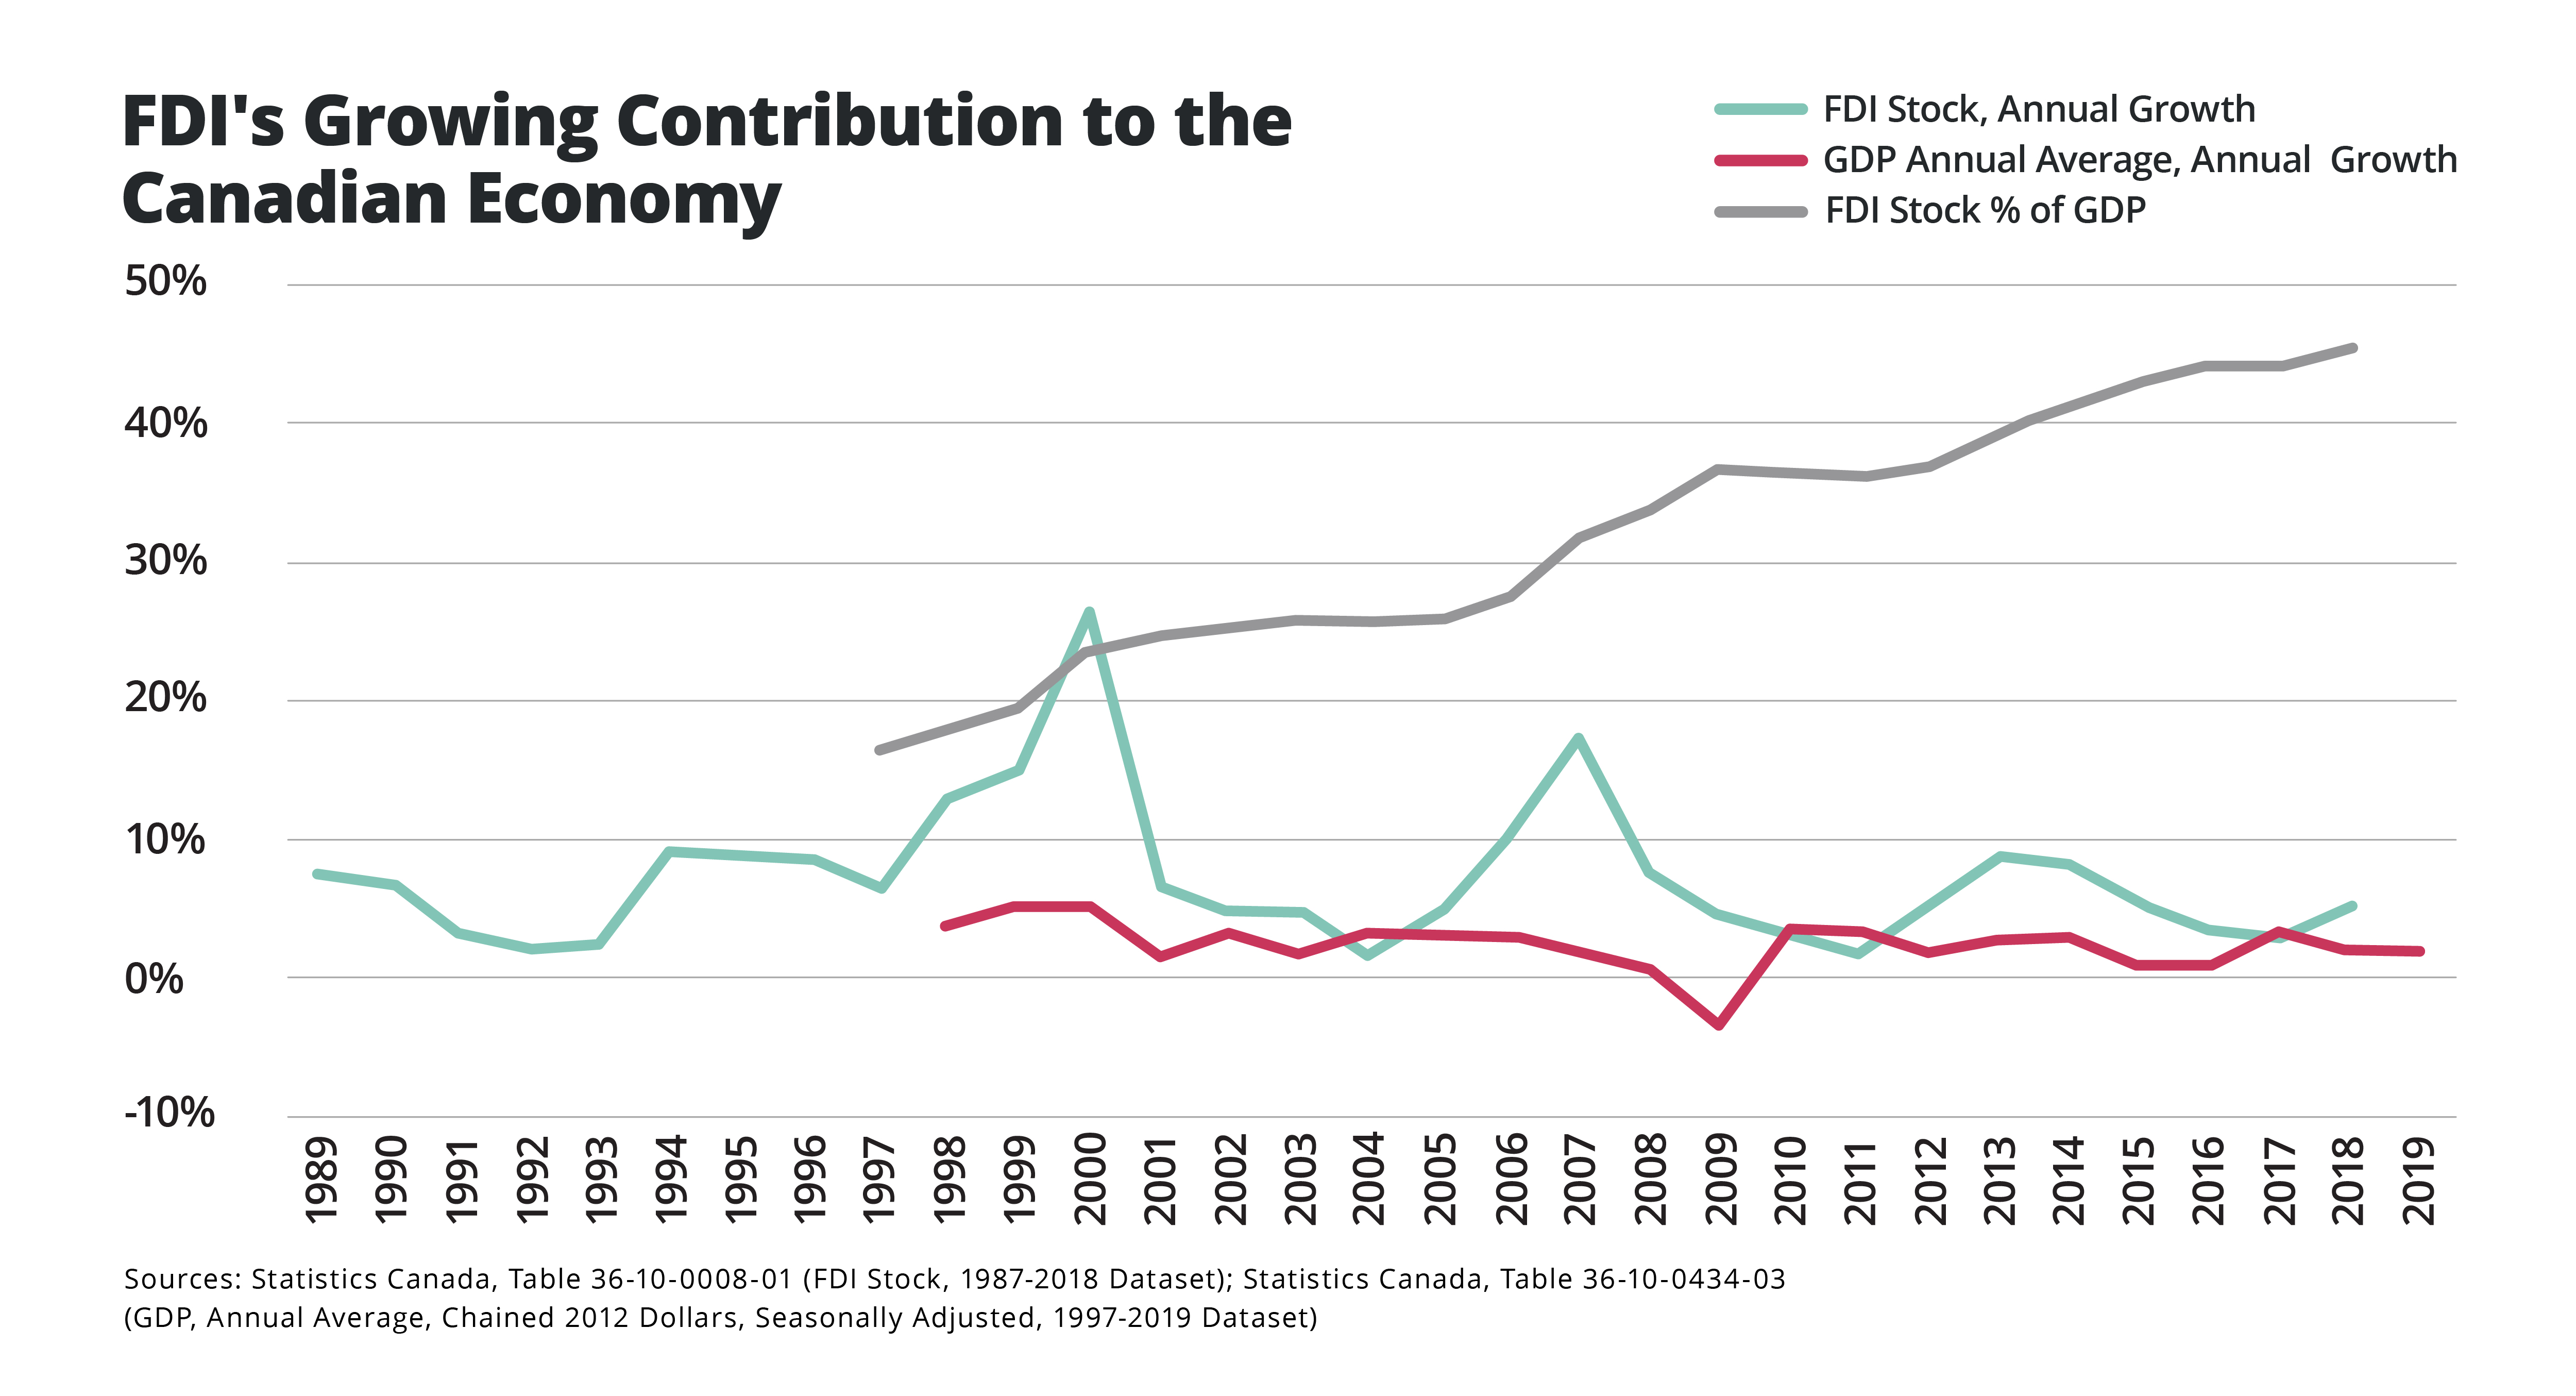 FDI's growing contribution to the Canadian Economy